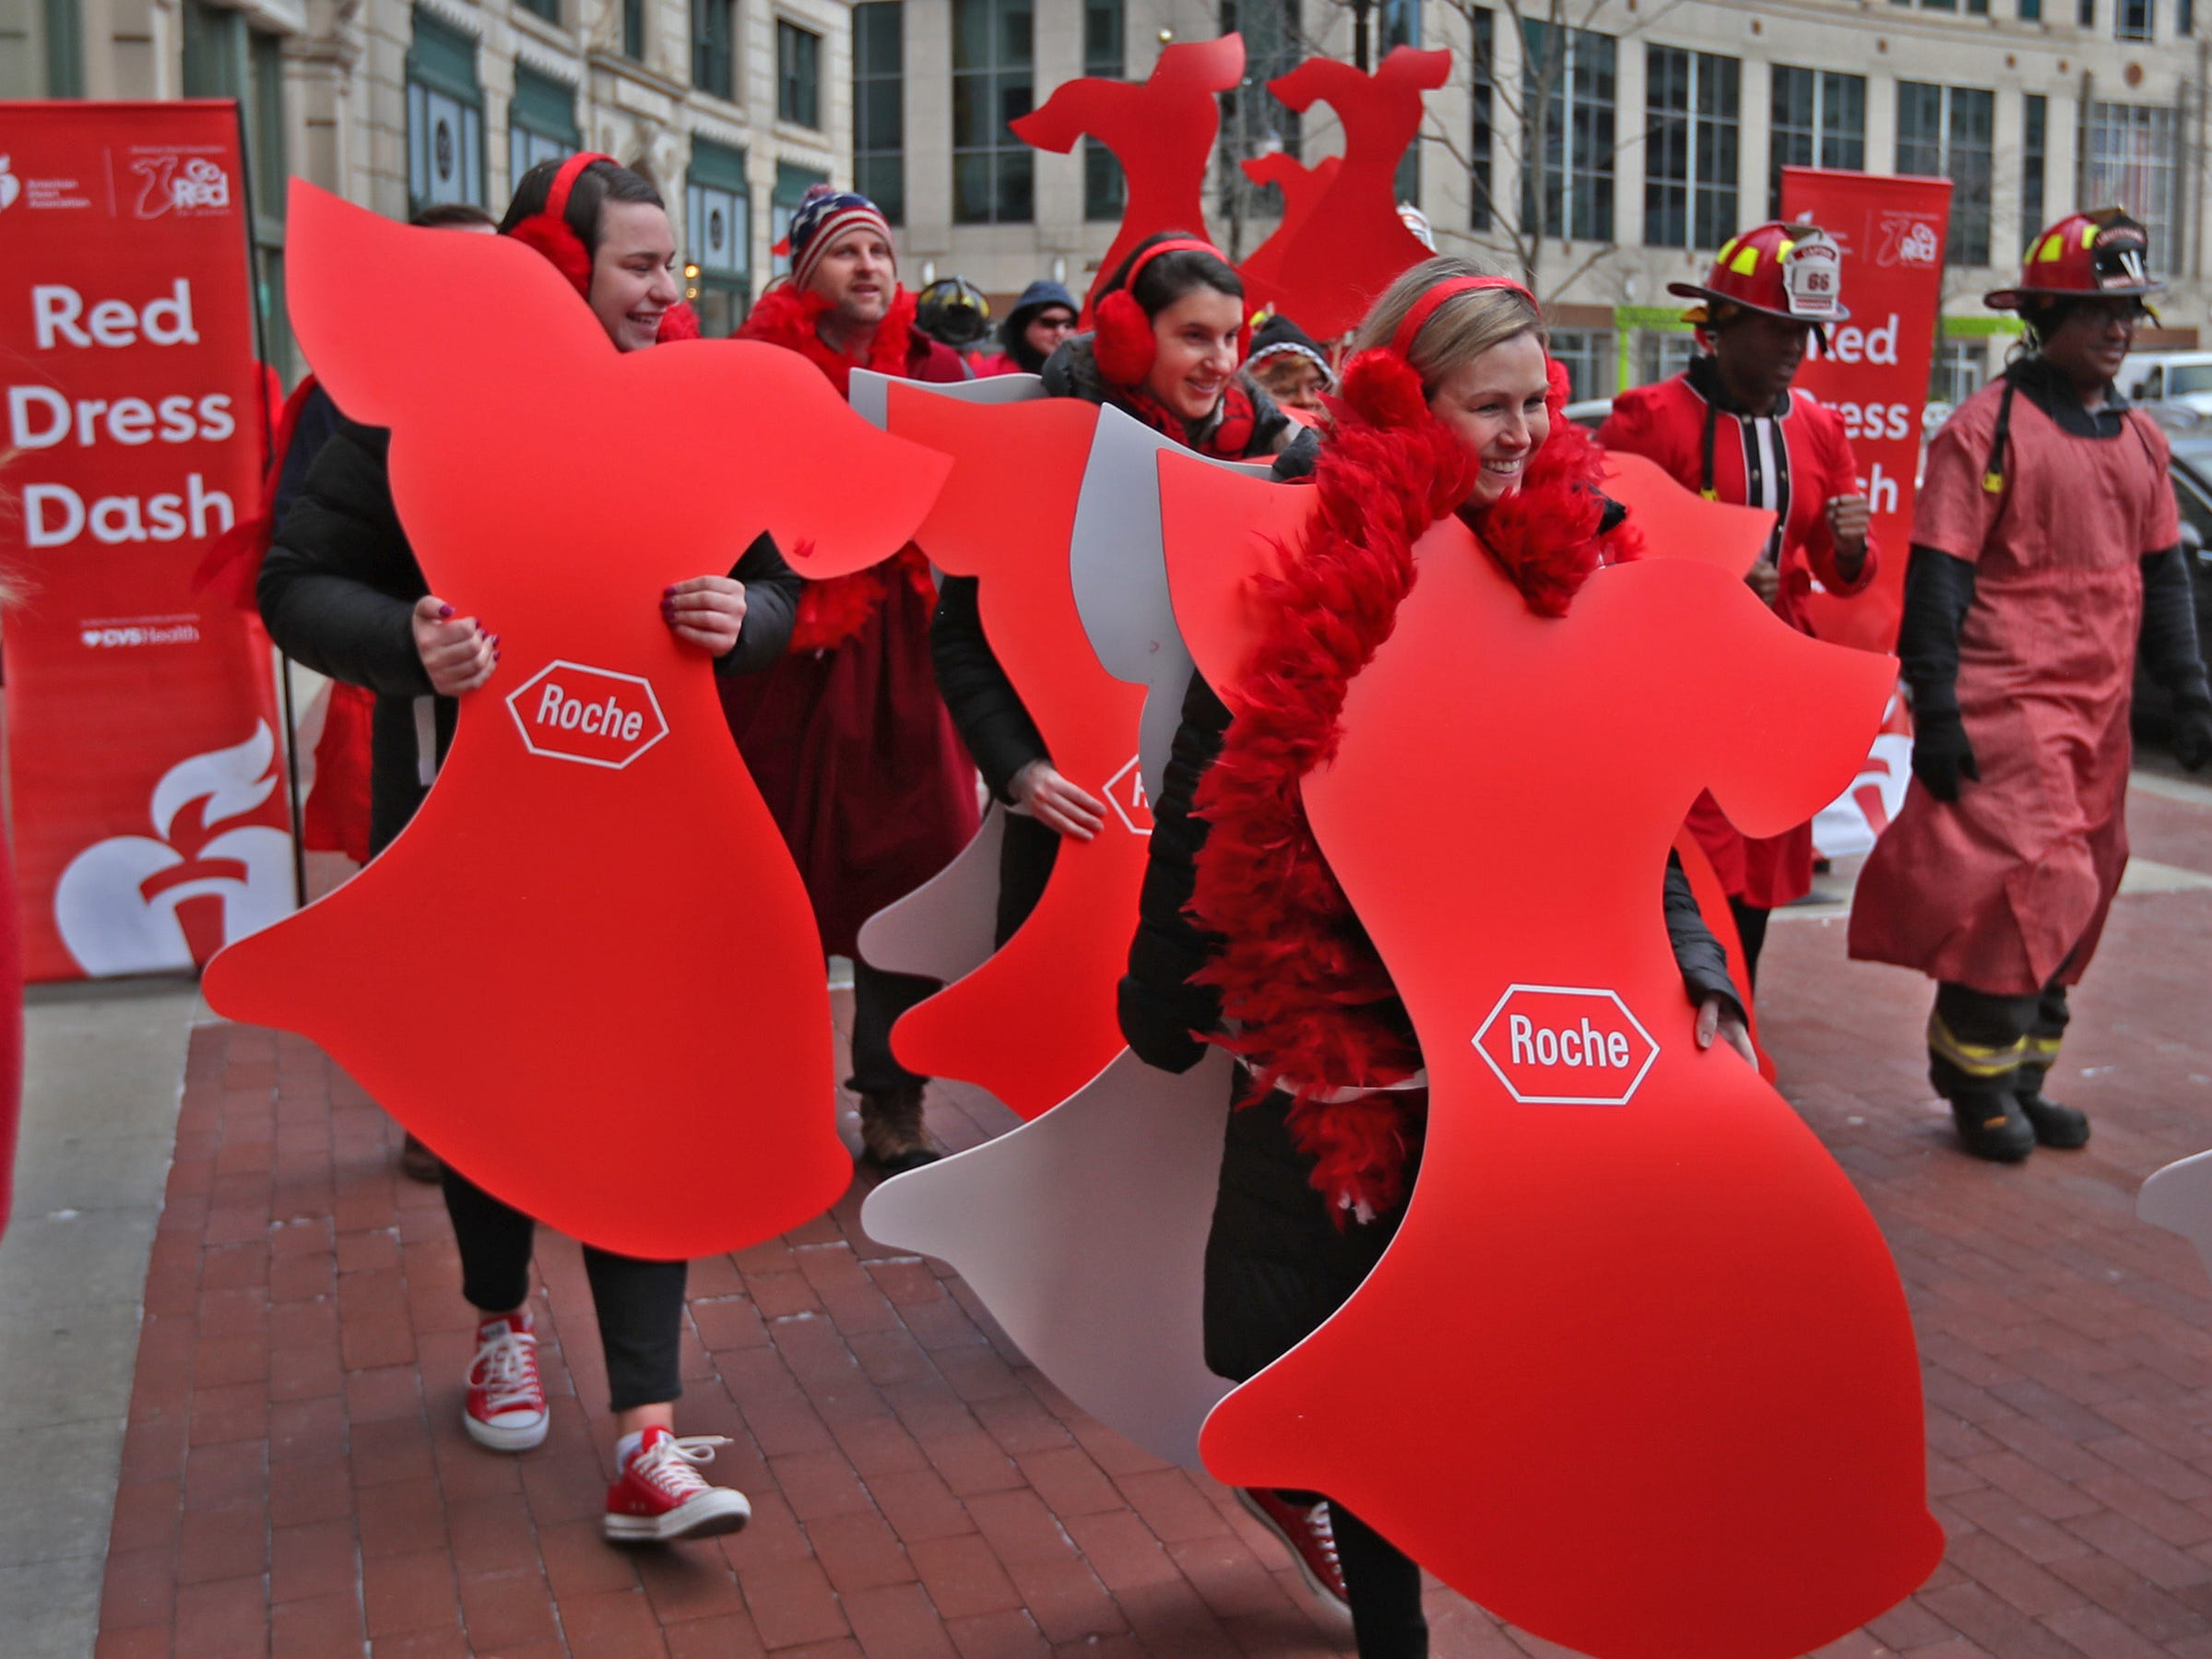 Maggie Sullivan, from left, Kelsey Hobbs and Courtney Sweeney, from Roche, join others in red as they walk around Monument Circle for the Red Dress Dash, Friday, Feb. 8, 2019.  The American Heart Association put on the seventh annual event to support women's heart health.  The event raises awareness for the American Heart Association's Go Red For Women movement.  Heart disease is the leading cause of death among women.